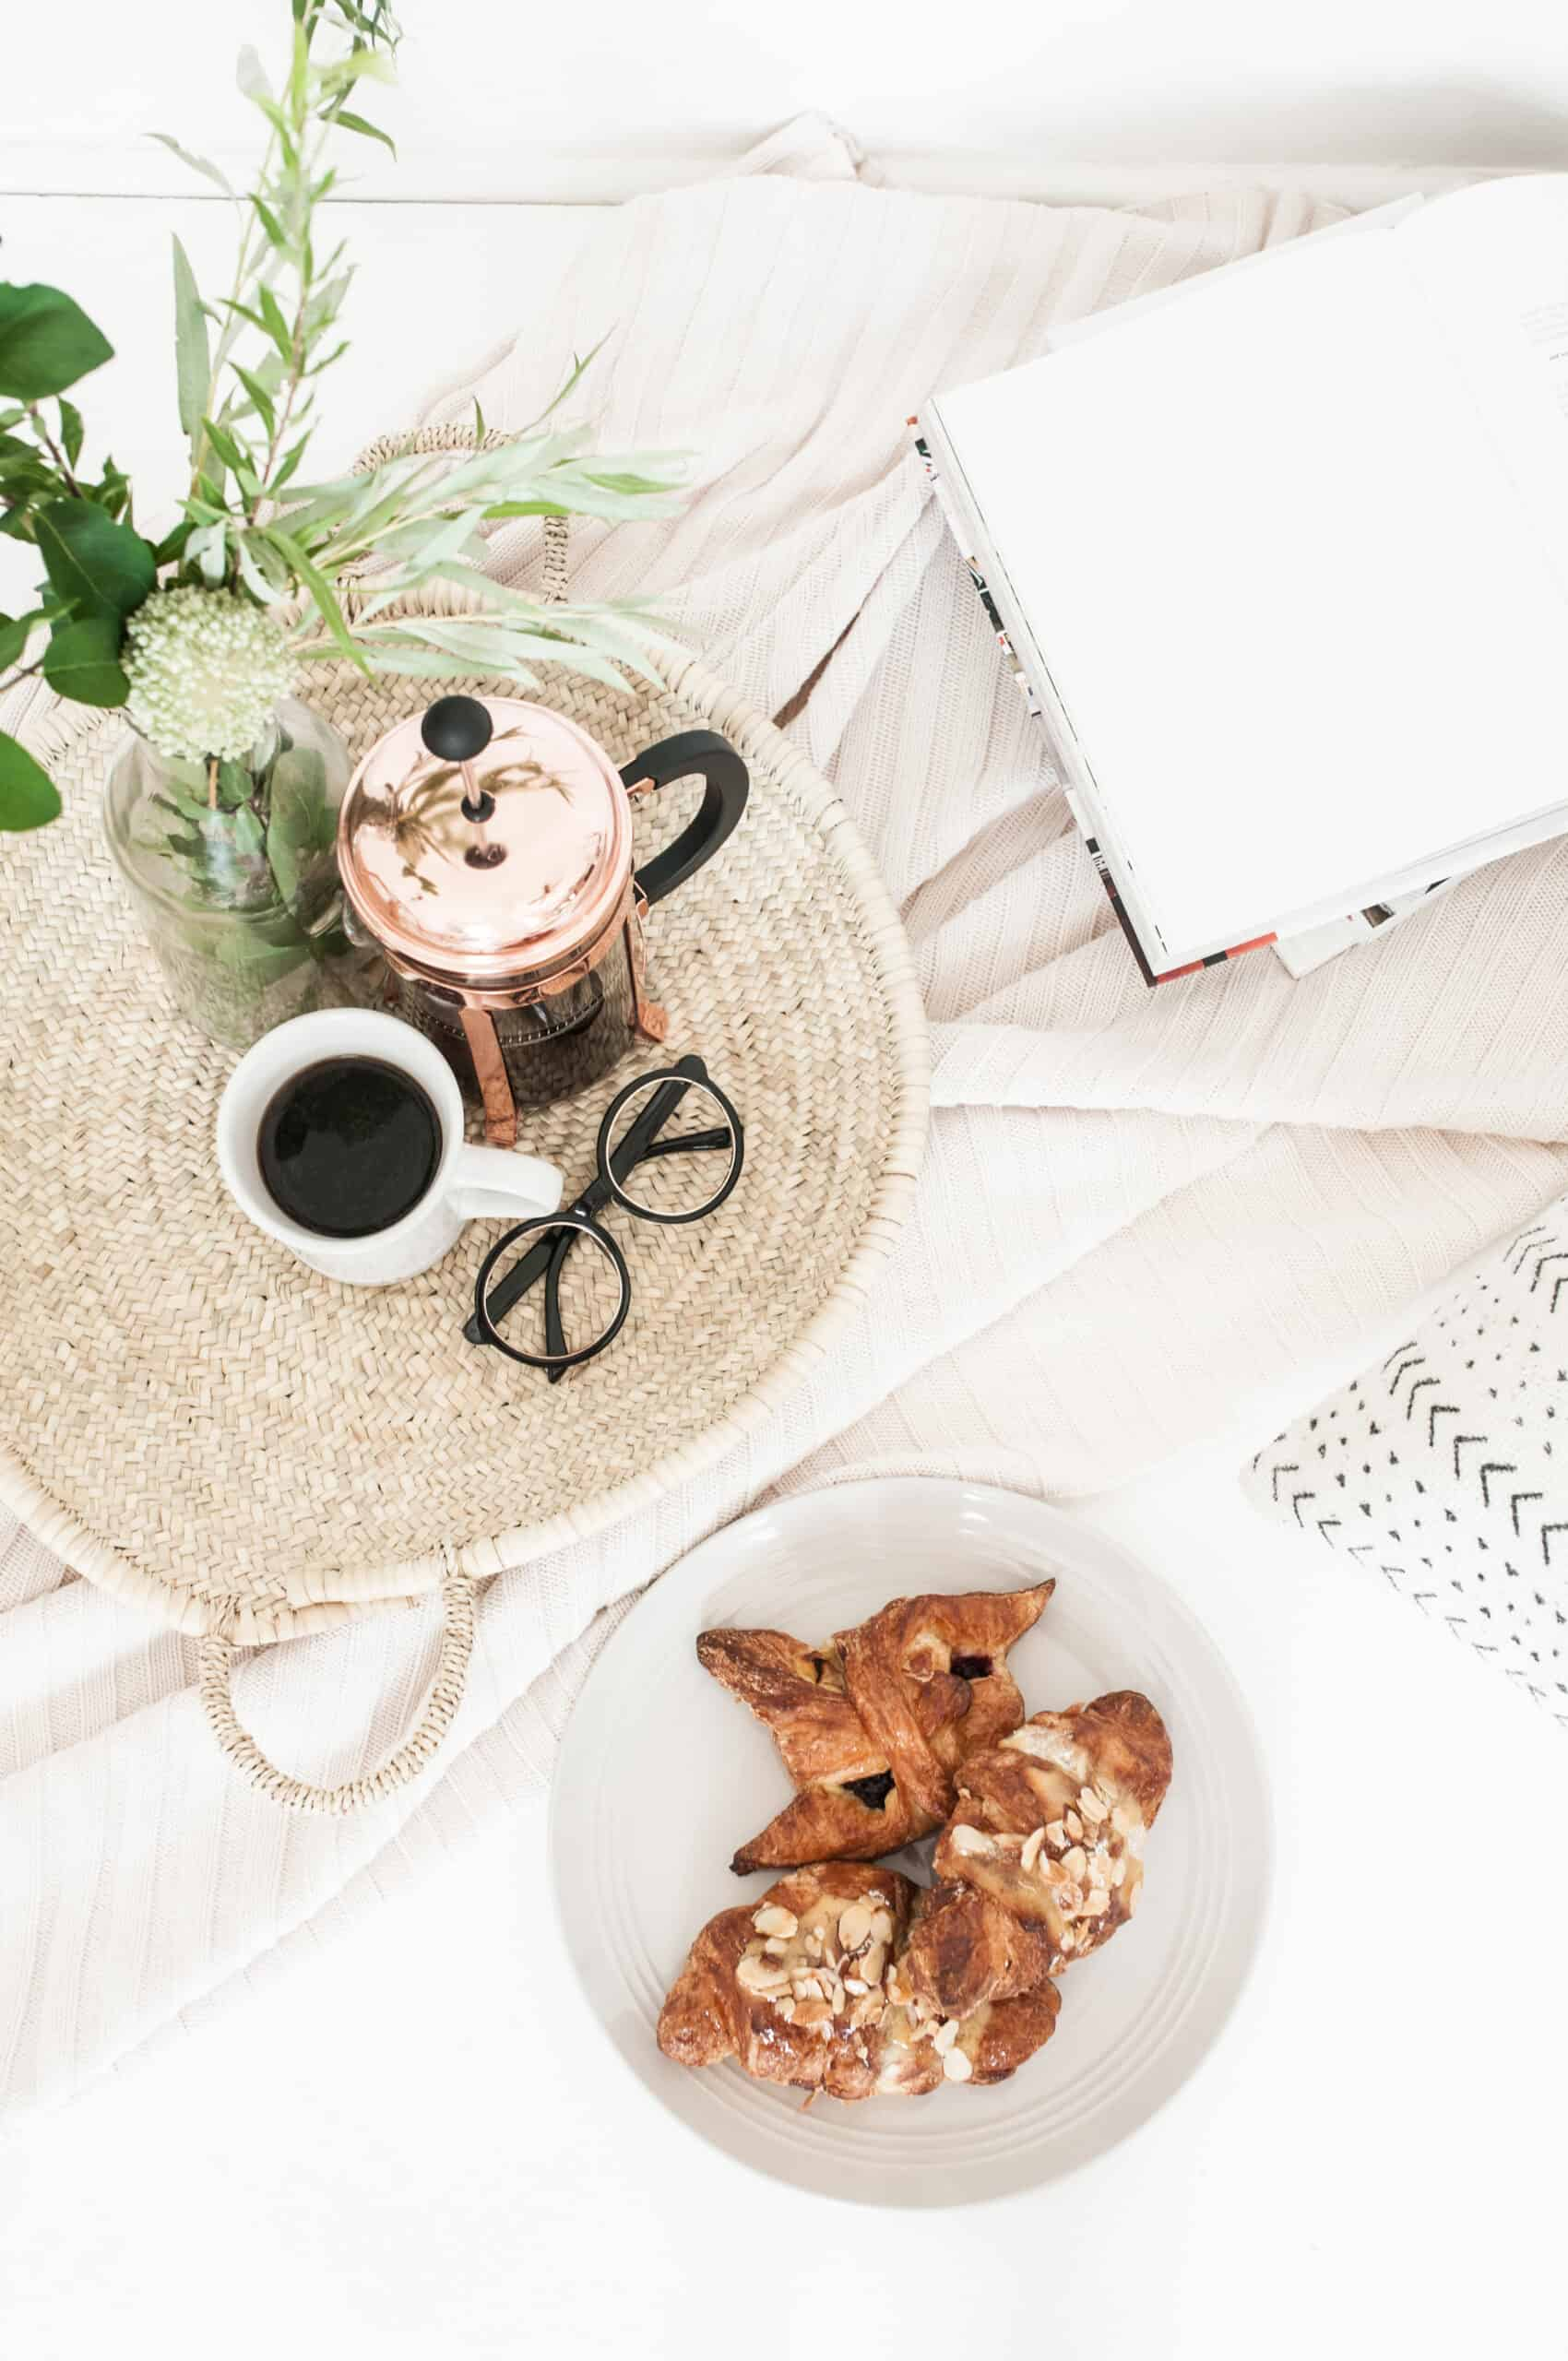 cozy scene of coffee, pastry, flowers and a closed pc